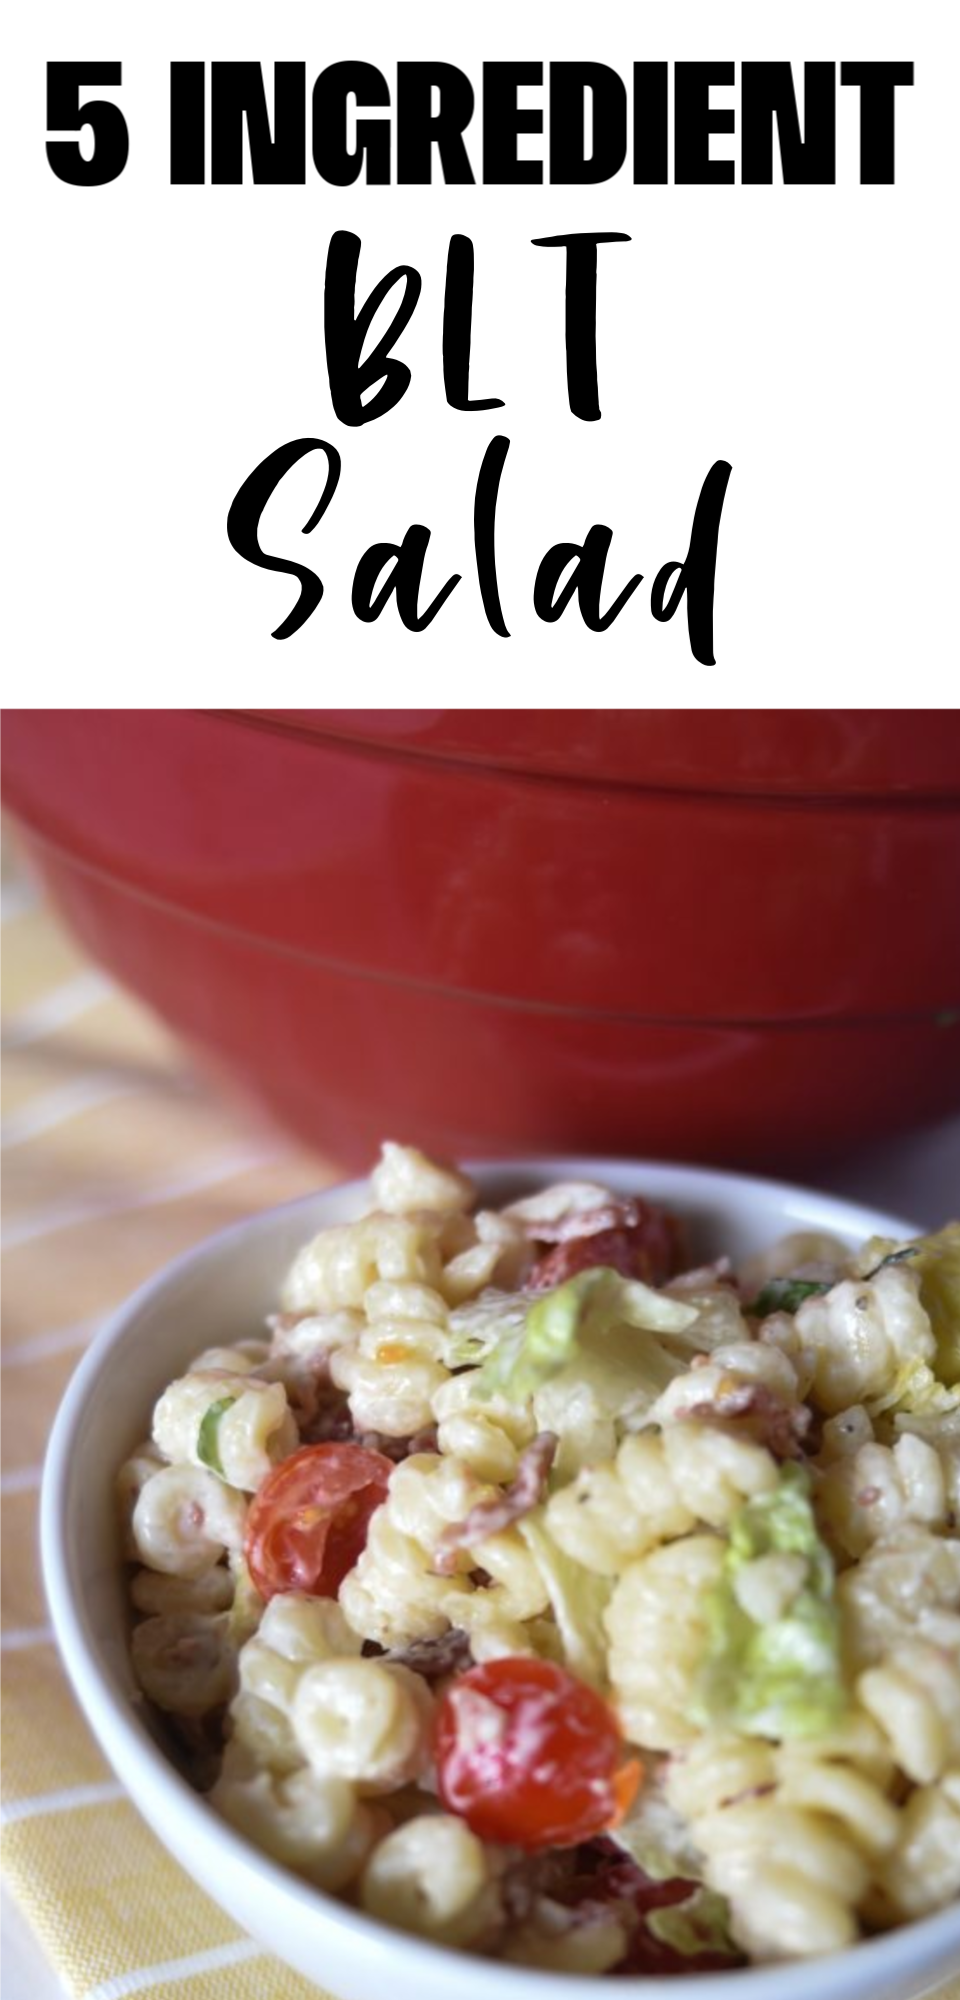 BLT Pasta Salad is the perfect summer salad. The crispy bacon and creamy dressing is the perfect combination. You will love our easy recipe for BLT Salad with pasta! via @simplysidedishes89